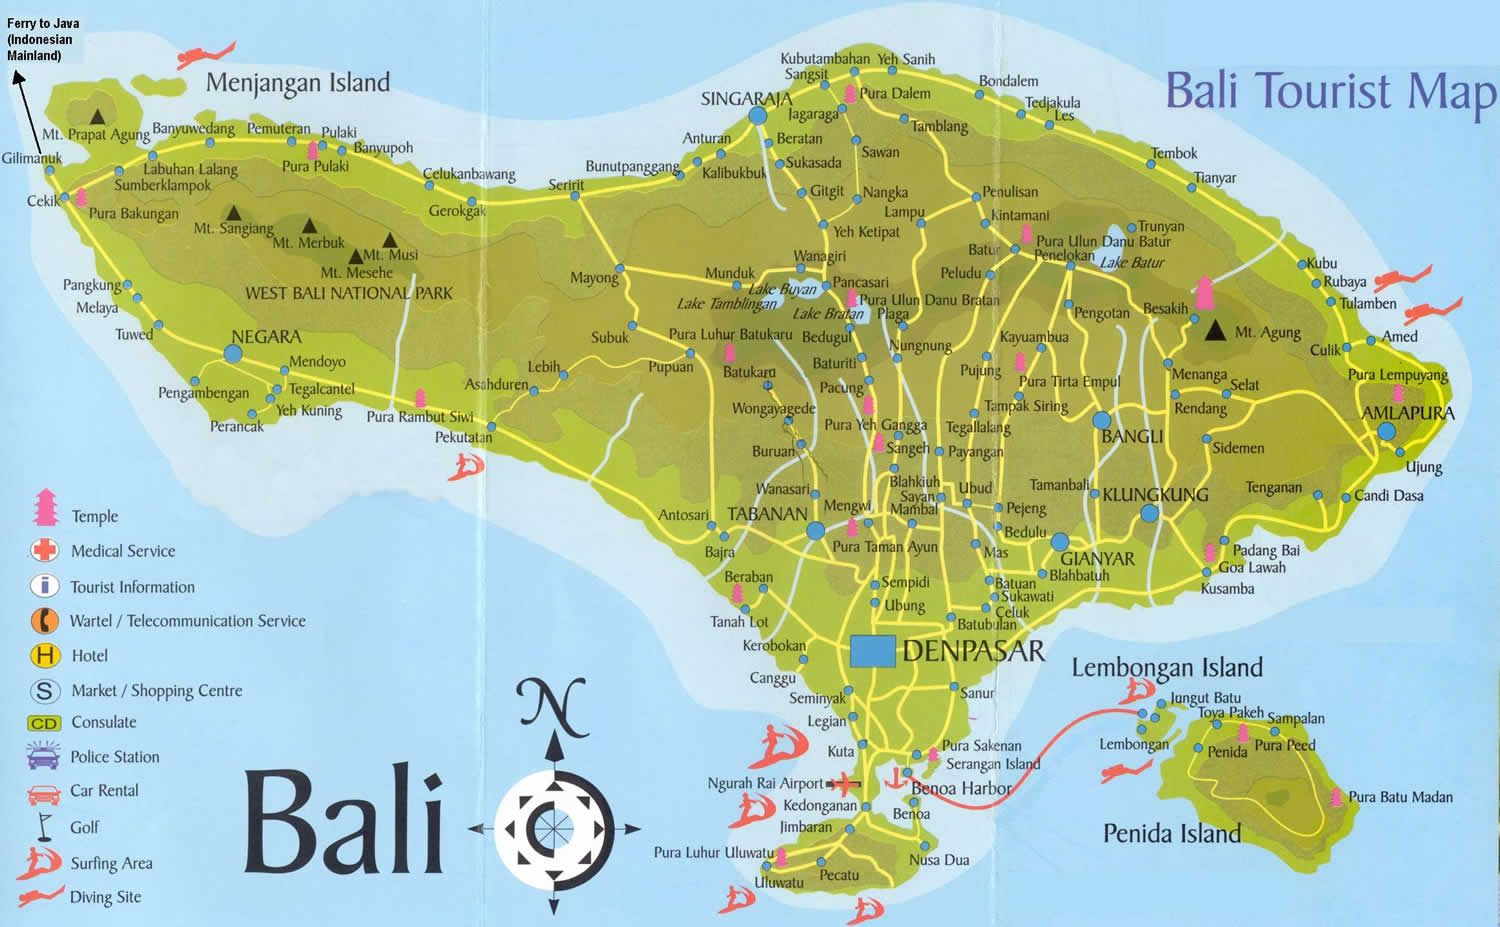 Bali Tourist Map Enjoy a wide range of attractions through specially designed tours that offer you the maximum Bali holiday experience